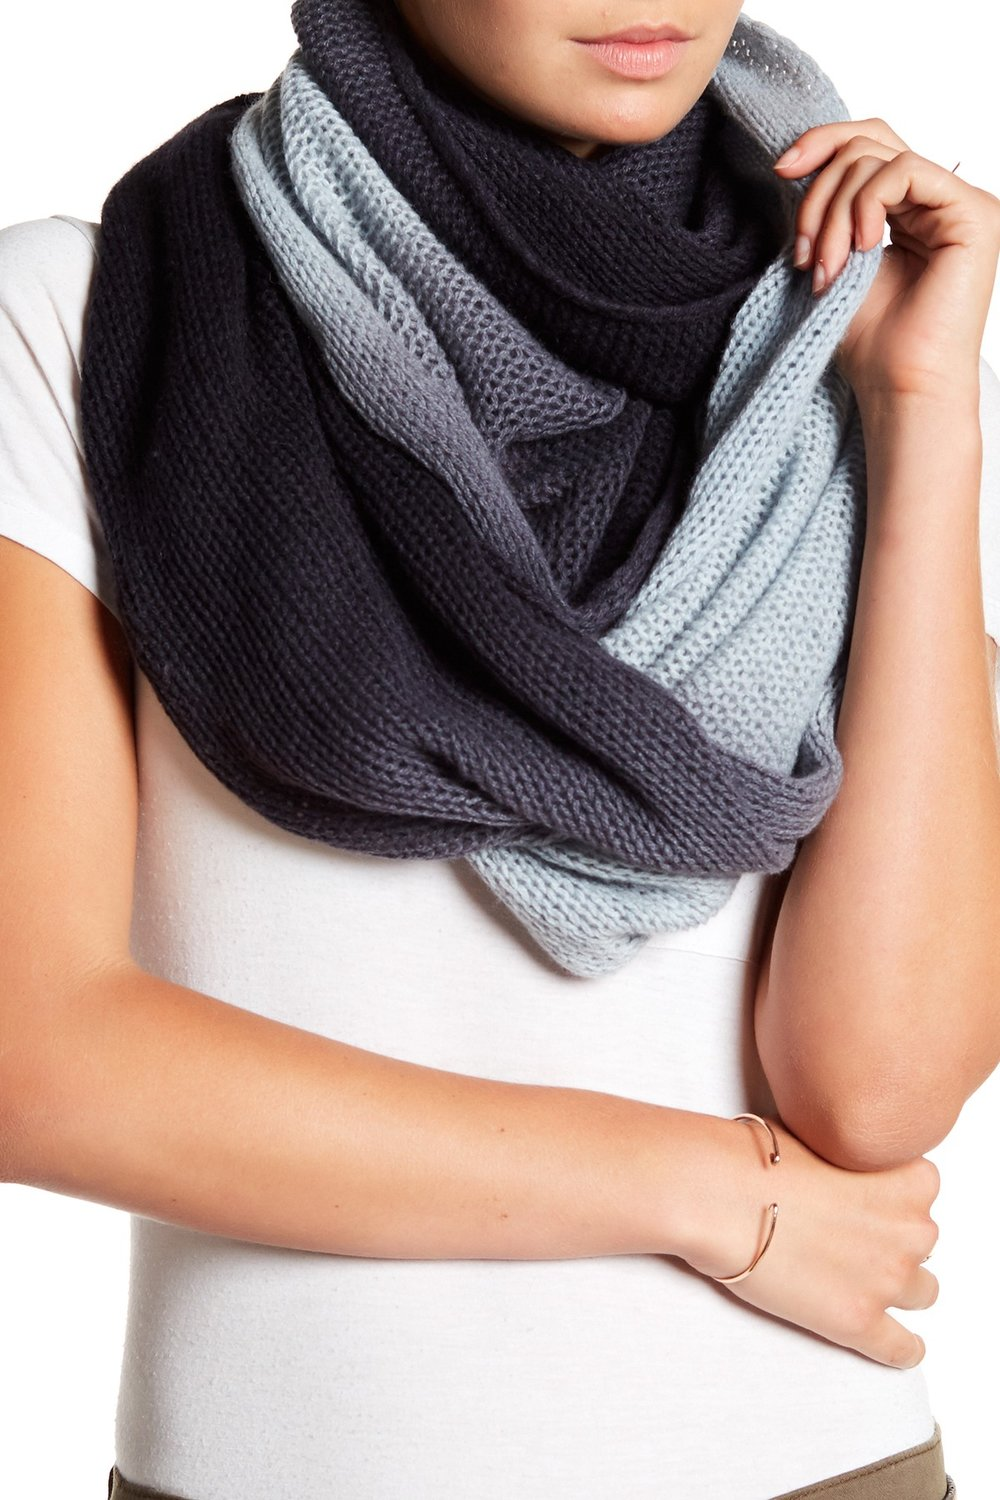 SKULL CASHMERE Gracen Cashmere Infinity Scarf. Available in multiple colors. Nordstrom Rack. Was: $219. Now: $99.